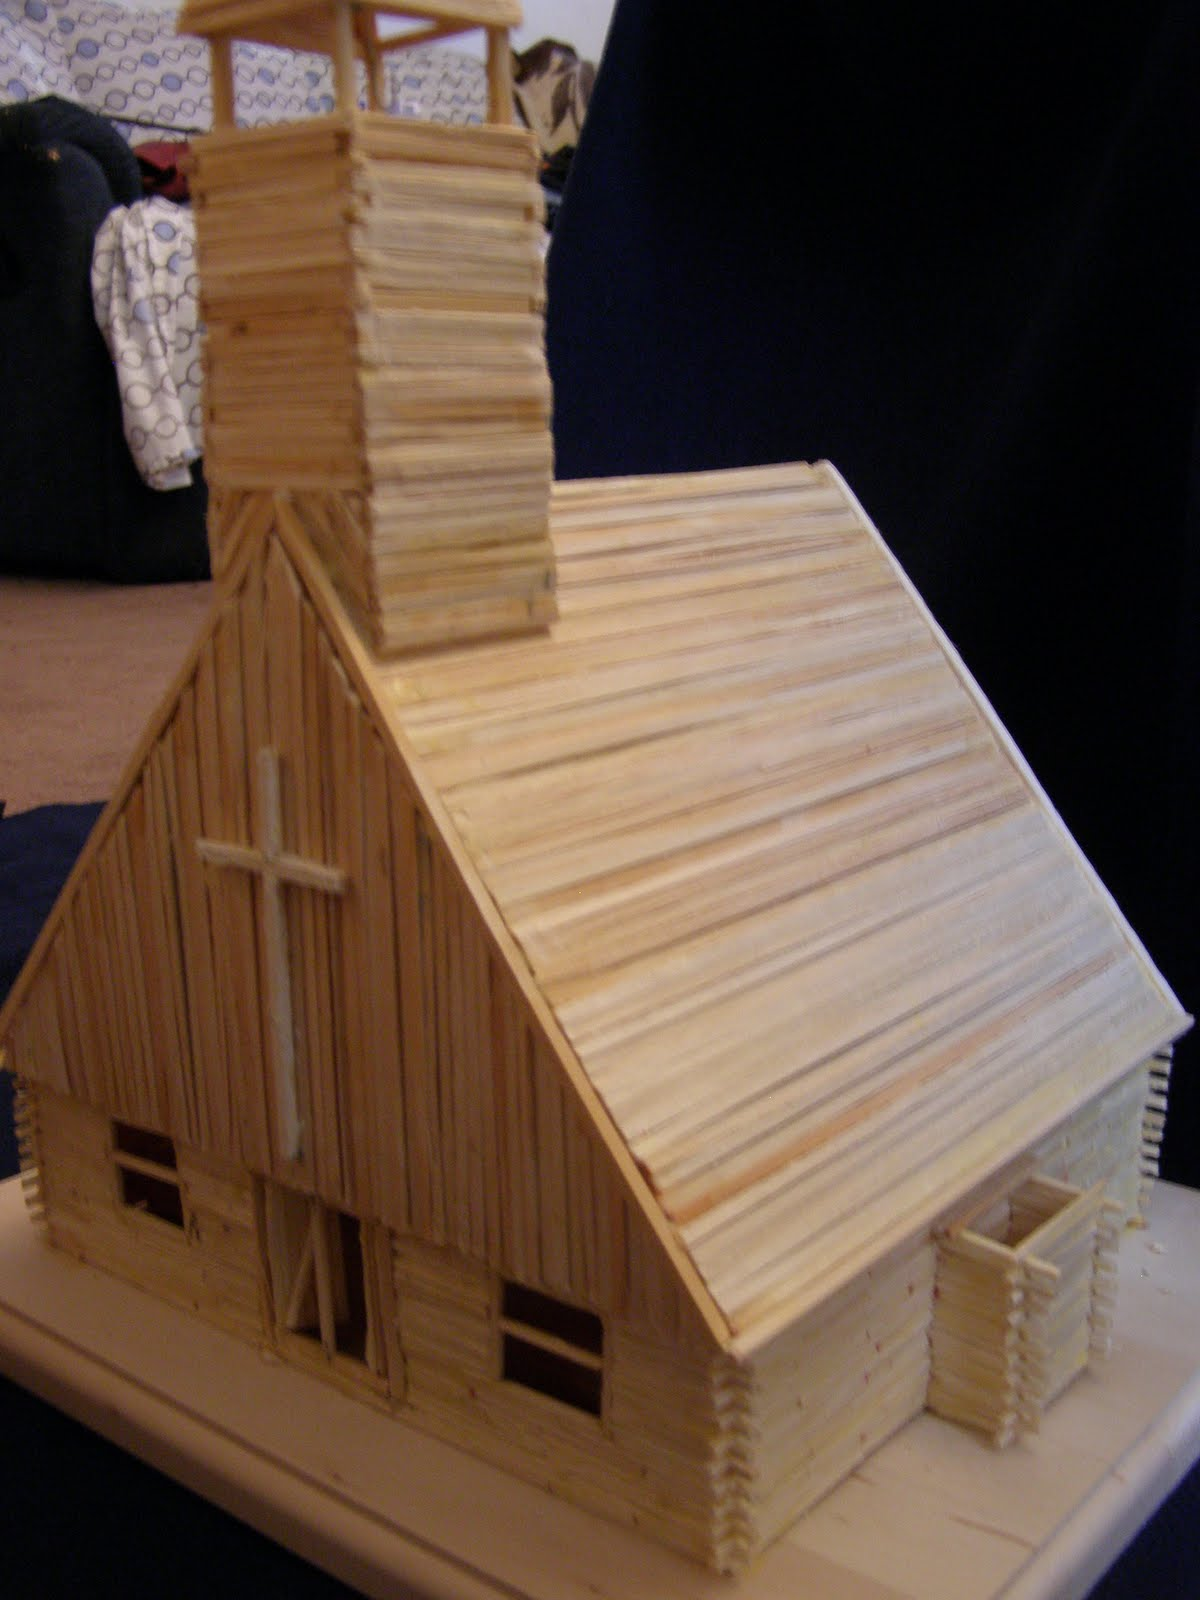 Miniature Log Cabins Main Page Miniature Log Cabins And